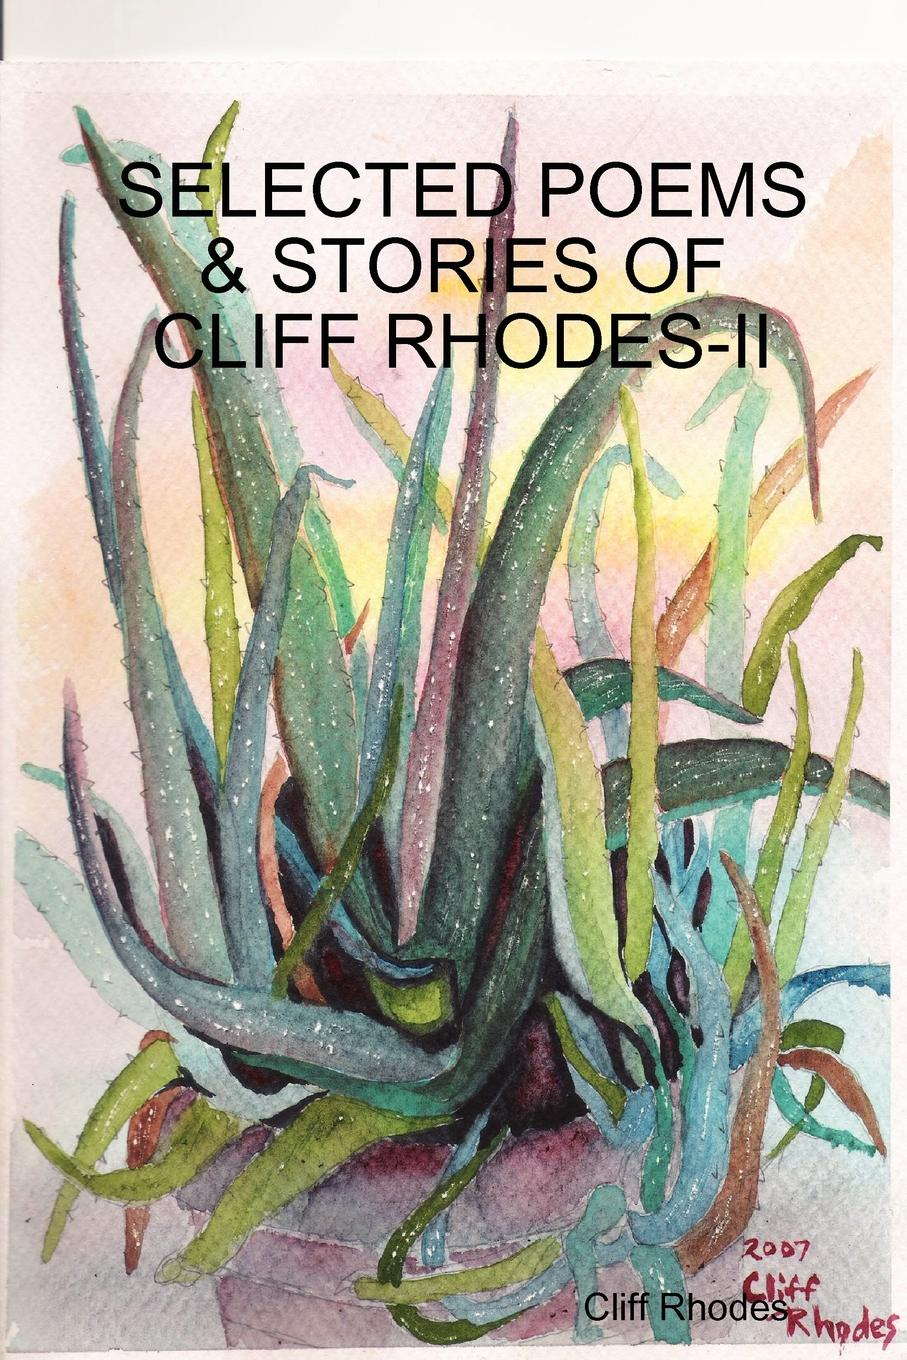 Cliff Rhodes SELECTED POEMS, STORIES, . WRITINGS OF CLIFF RHODES - II samuel mucklebackit lumsden the battles of dunbar prestonpans and other selected poems